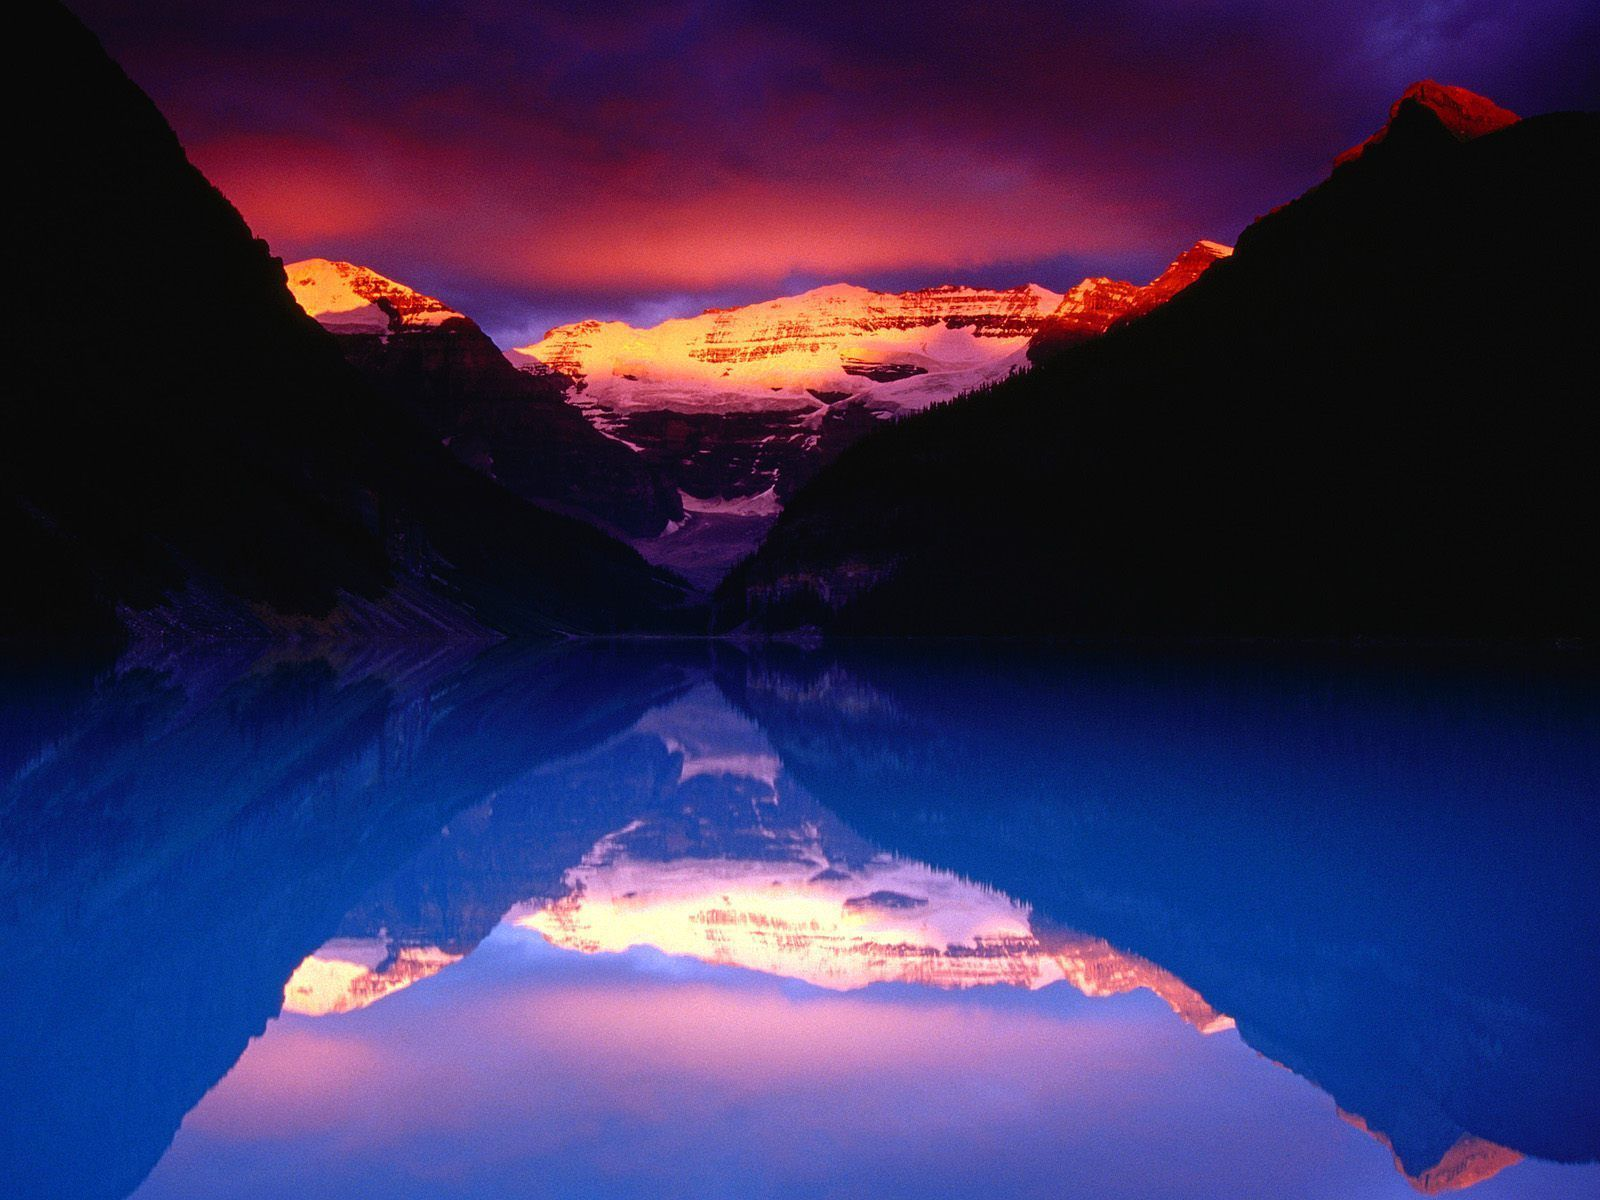 Canada Images Lake Louise Hd Wallpaper And Background Photos 9727993